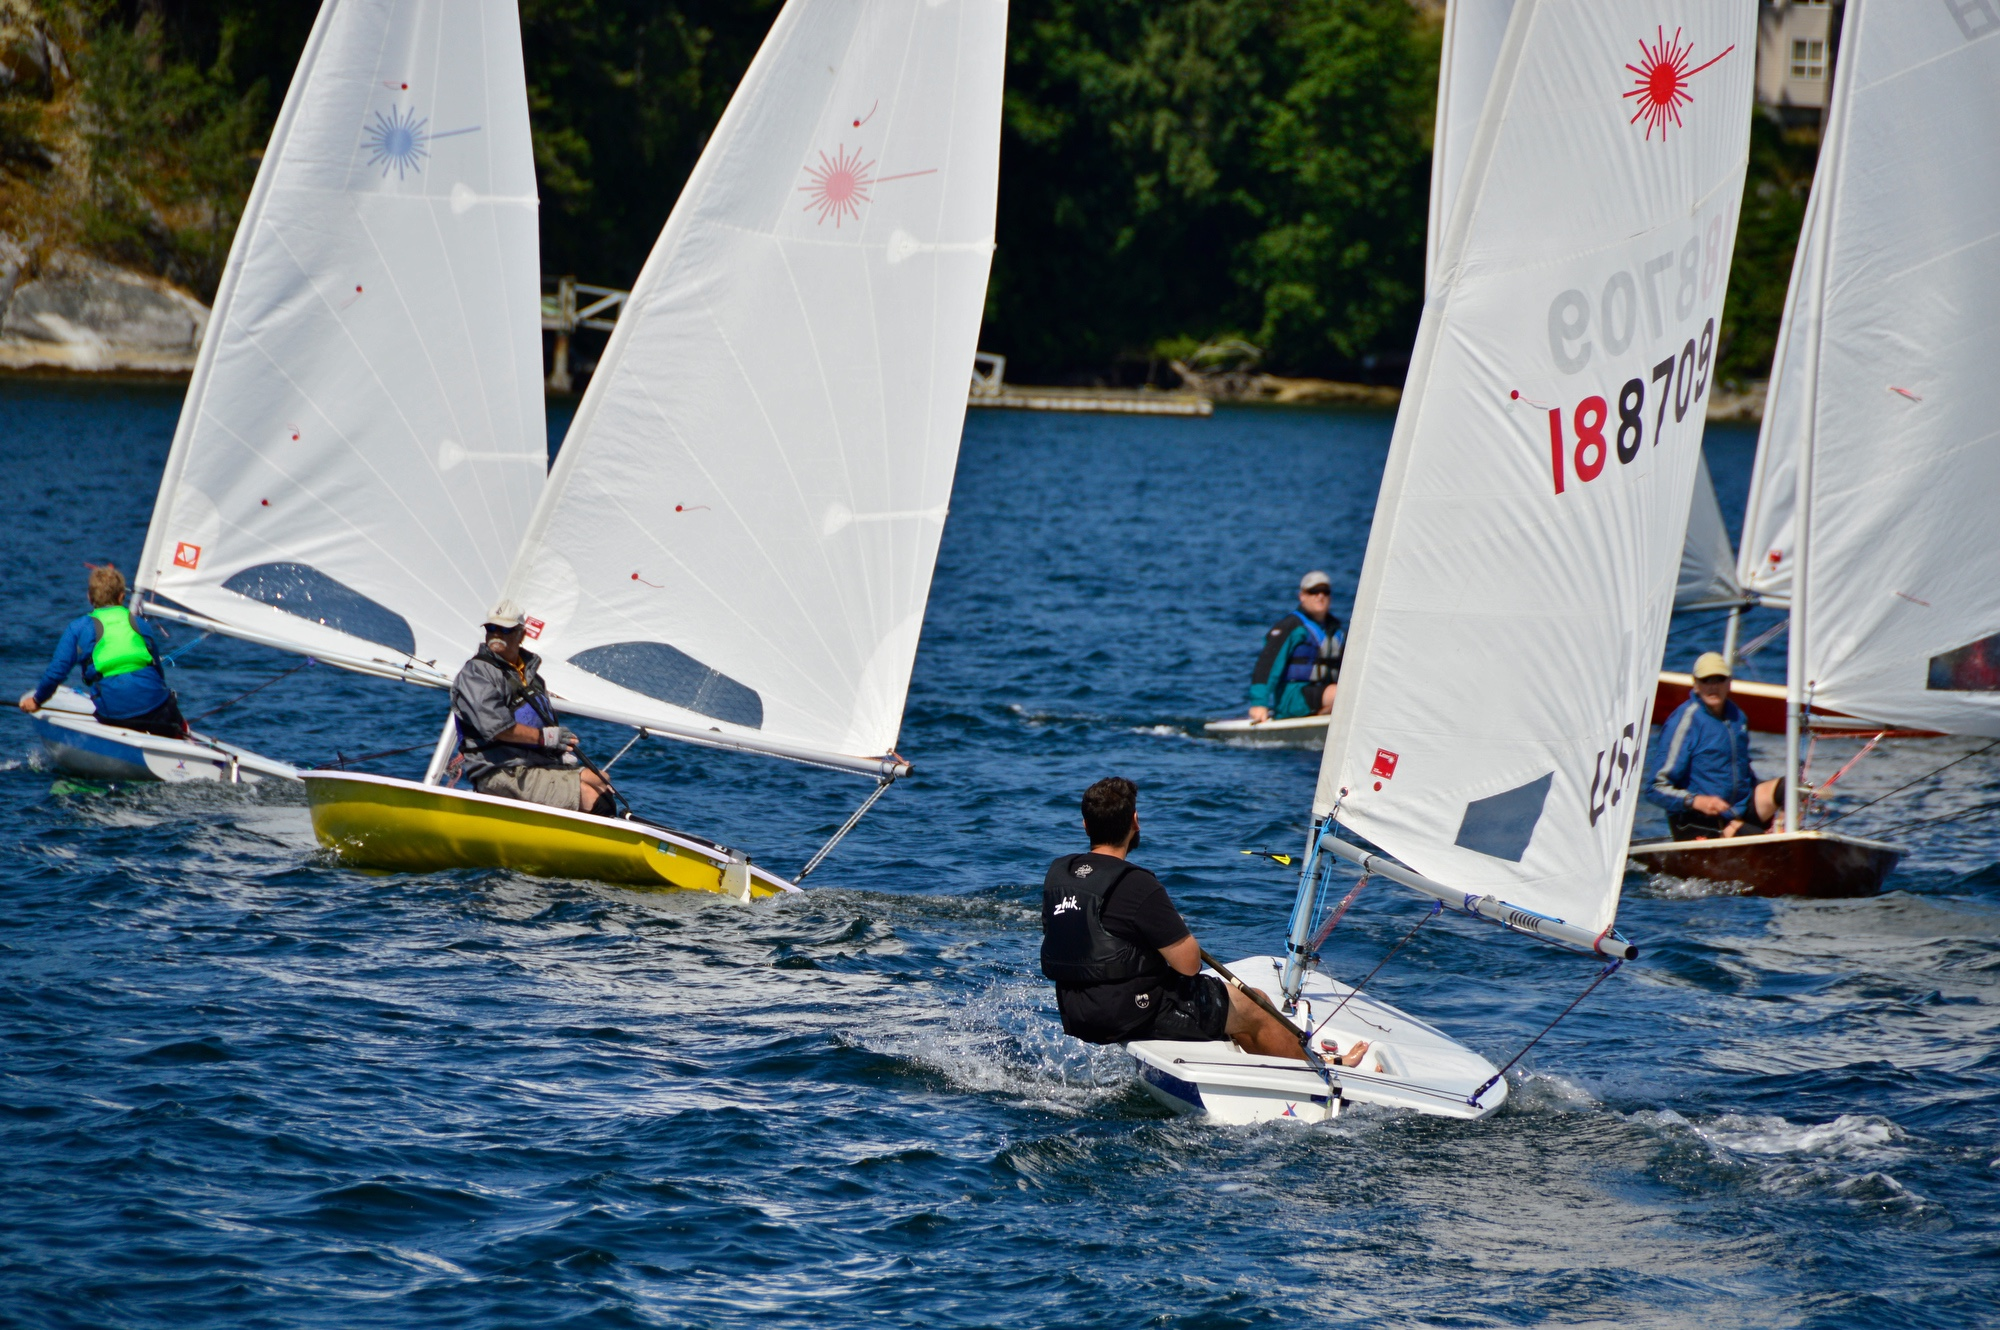 Lasers staging for the start of the race at The 6th Annual Poise Cove Regatta July 16th, 2017